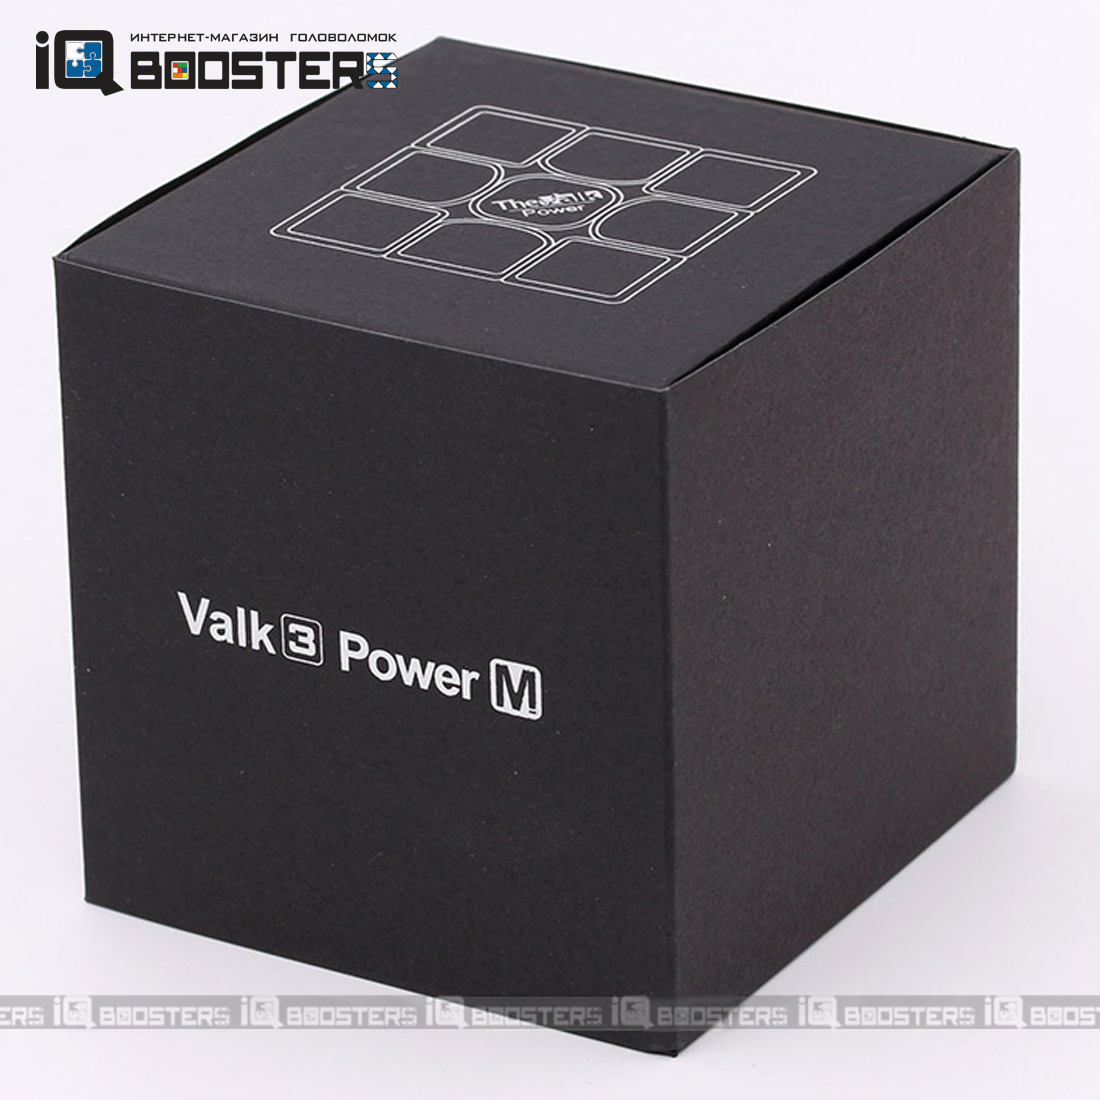 valk3_power_m_10